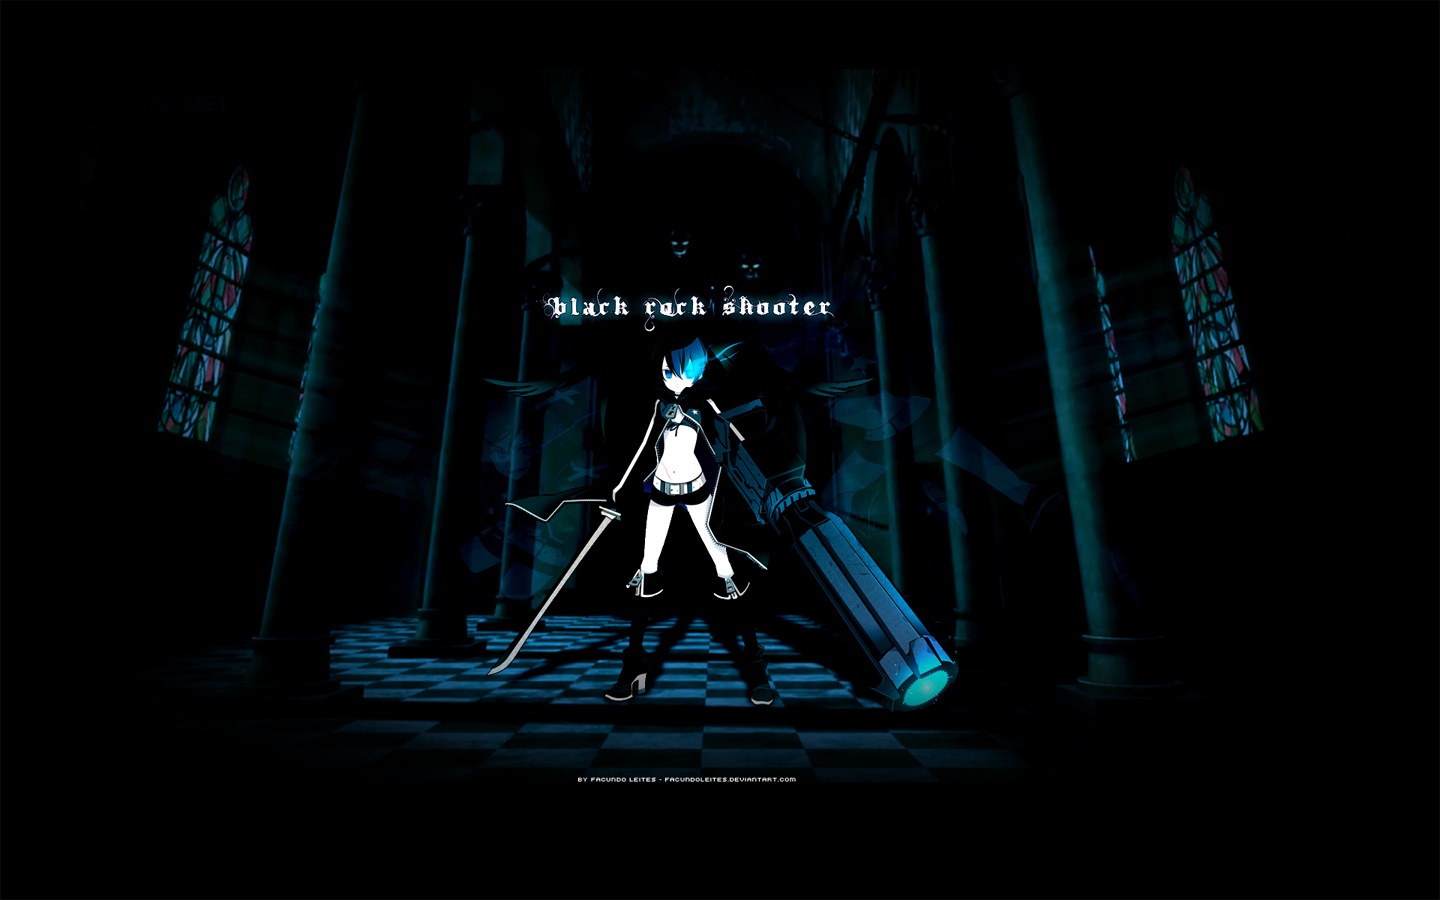 So Cute Girl Hd Wallpaper Black Rock Shooter Wallpapers Pack 16 04 12